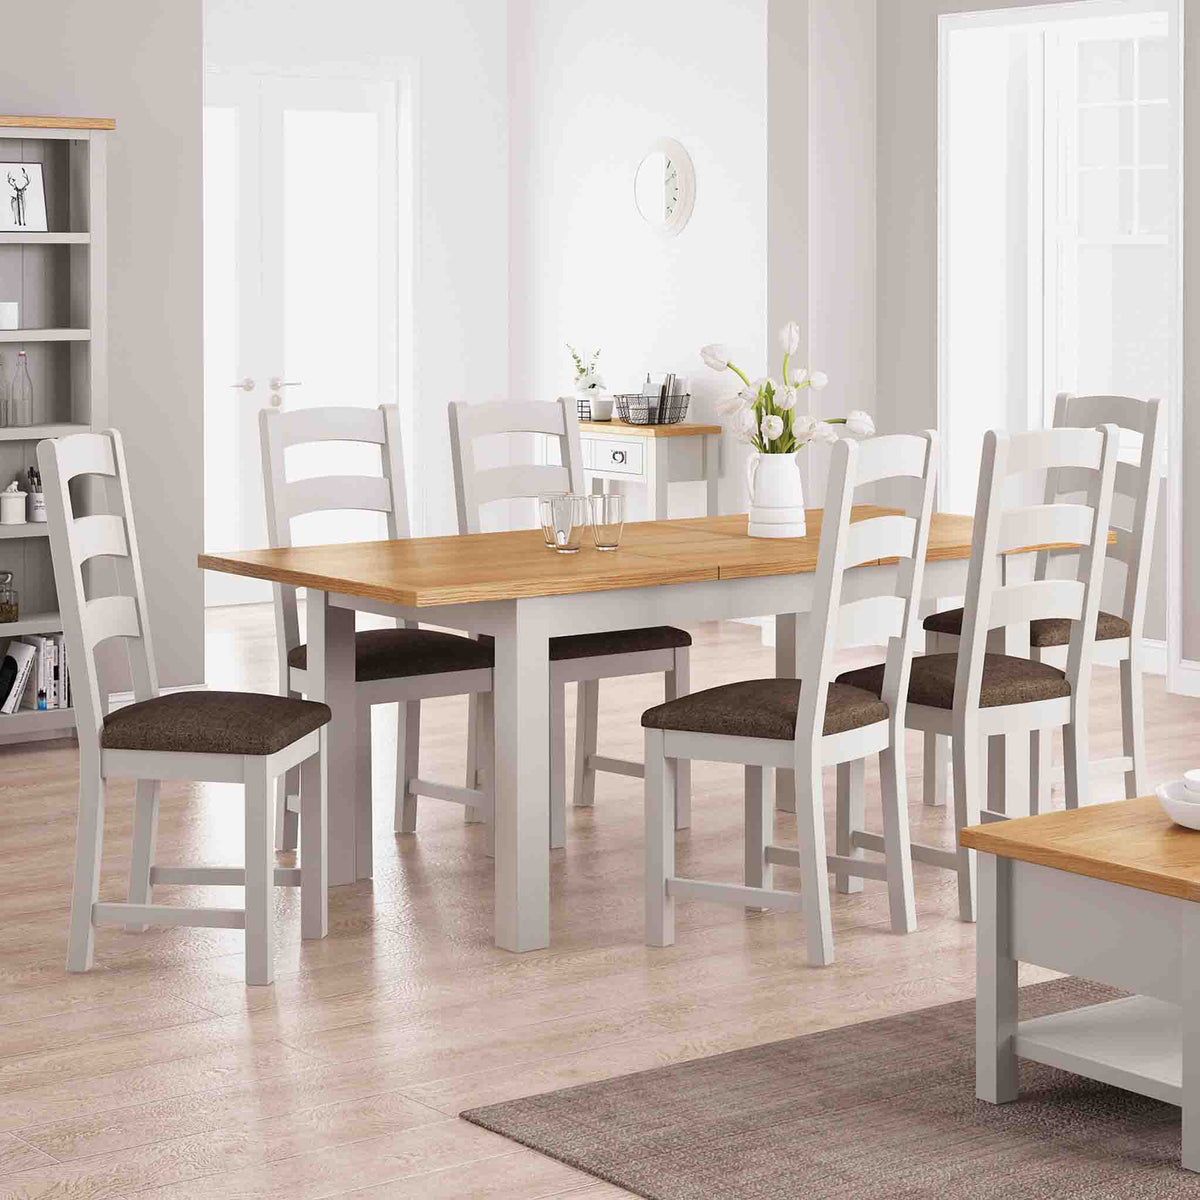 Dorset Stone Grey Ladder Back Dining Chair lifestyle image